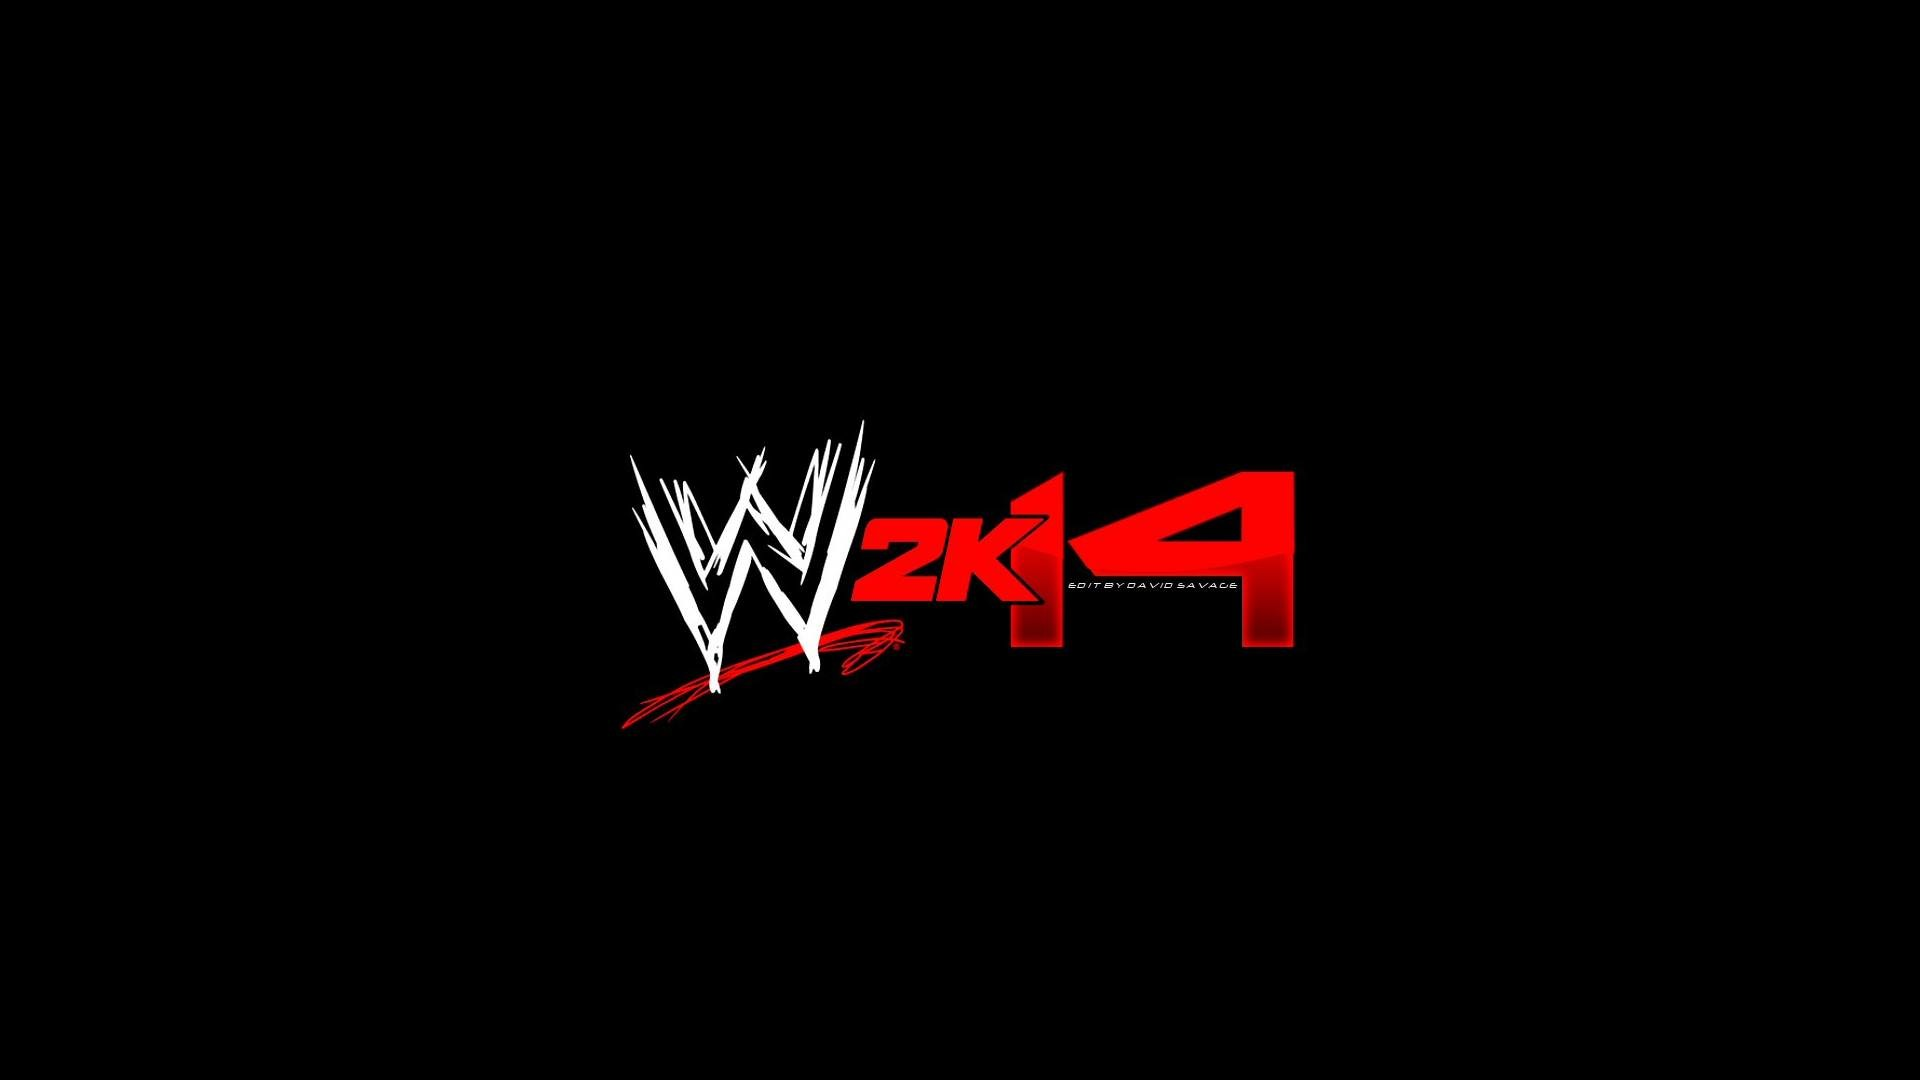 1920x1080 WWE 2K14 Logo Exclusive HD Wallpapers #5641